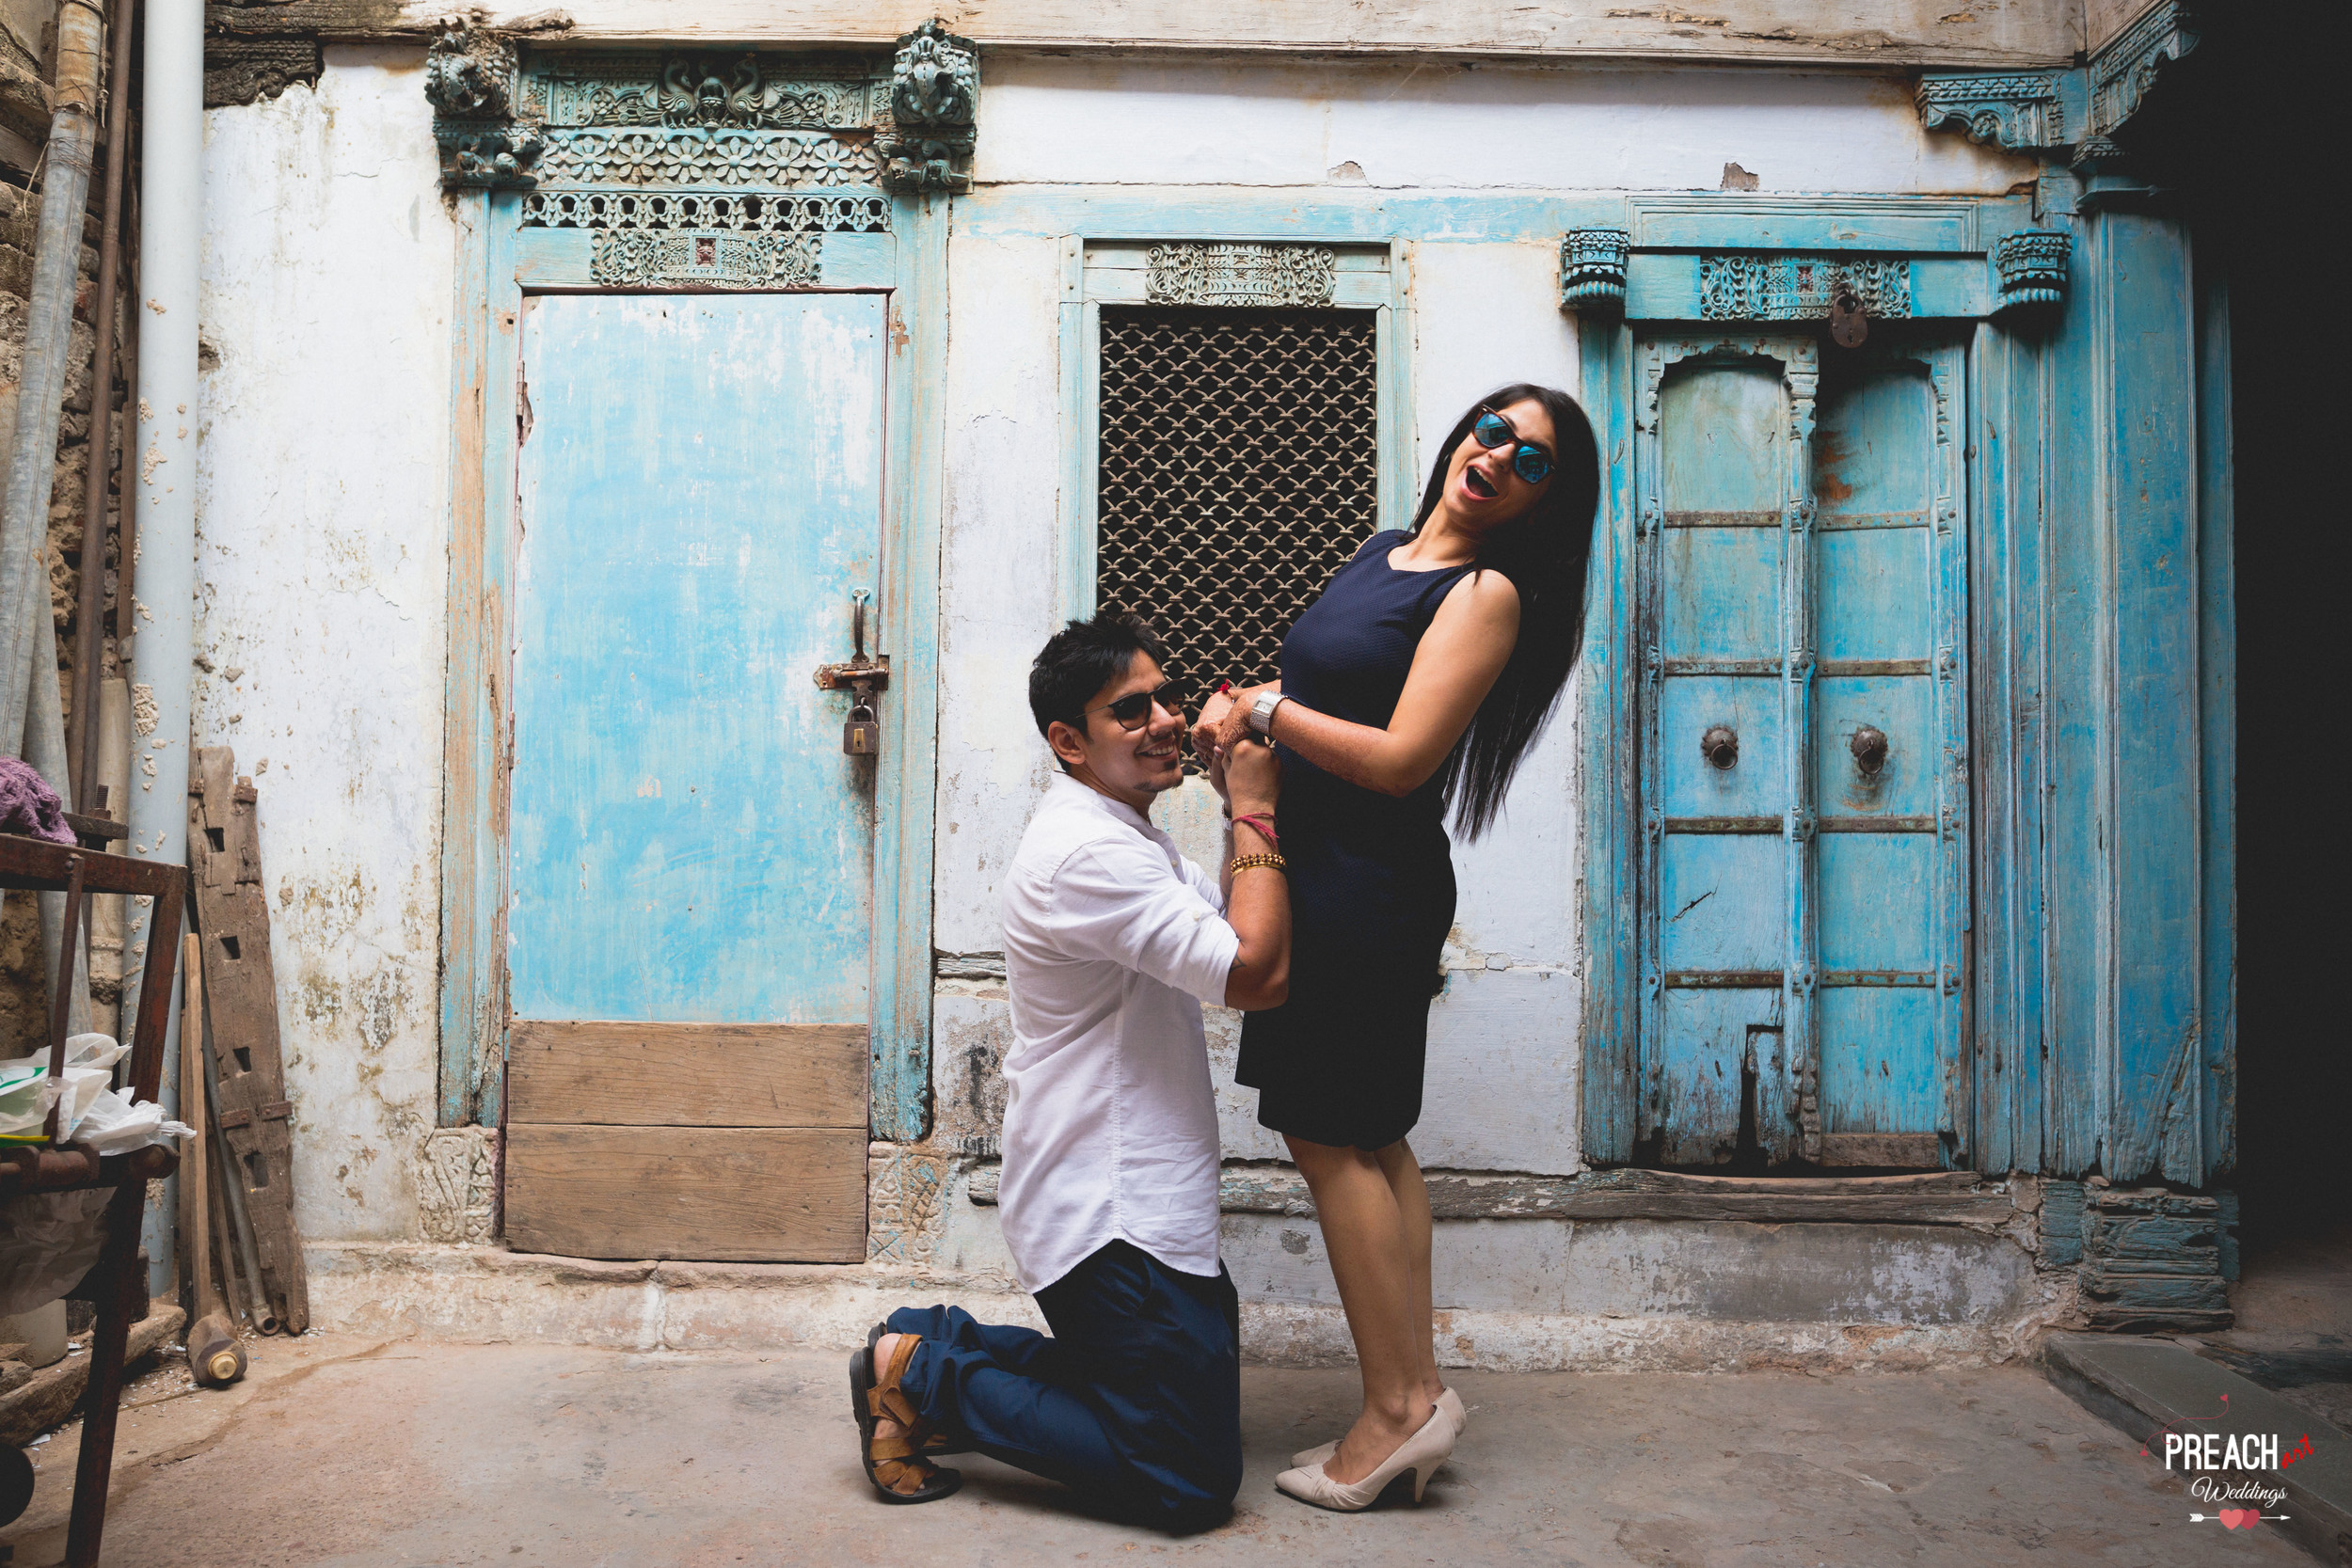 V&M_PRE-WEDDING SHOOT_AHMEDABAD OLD CITY_PREACH ART-25.jpg